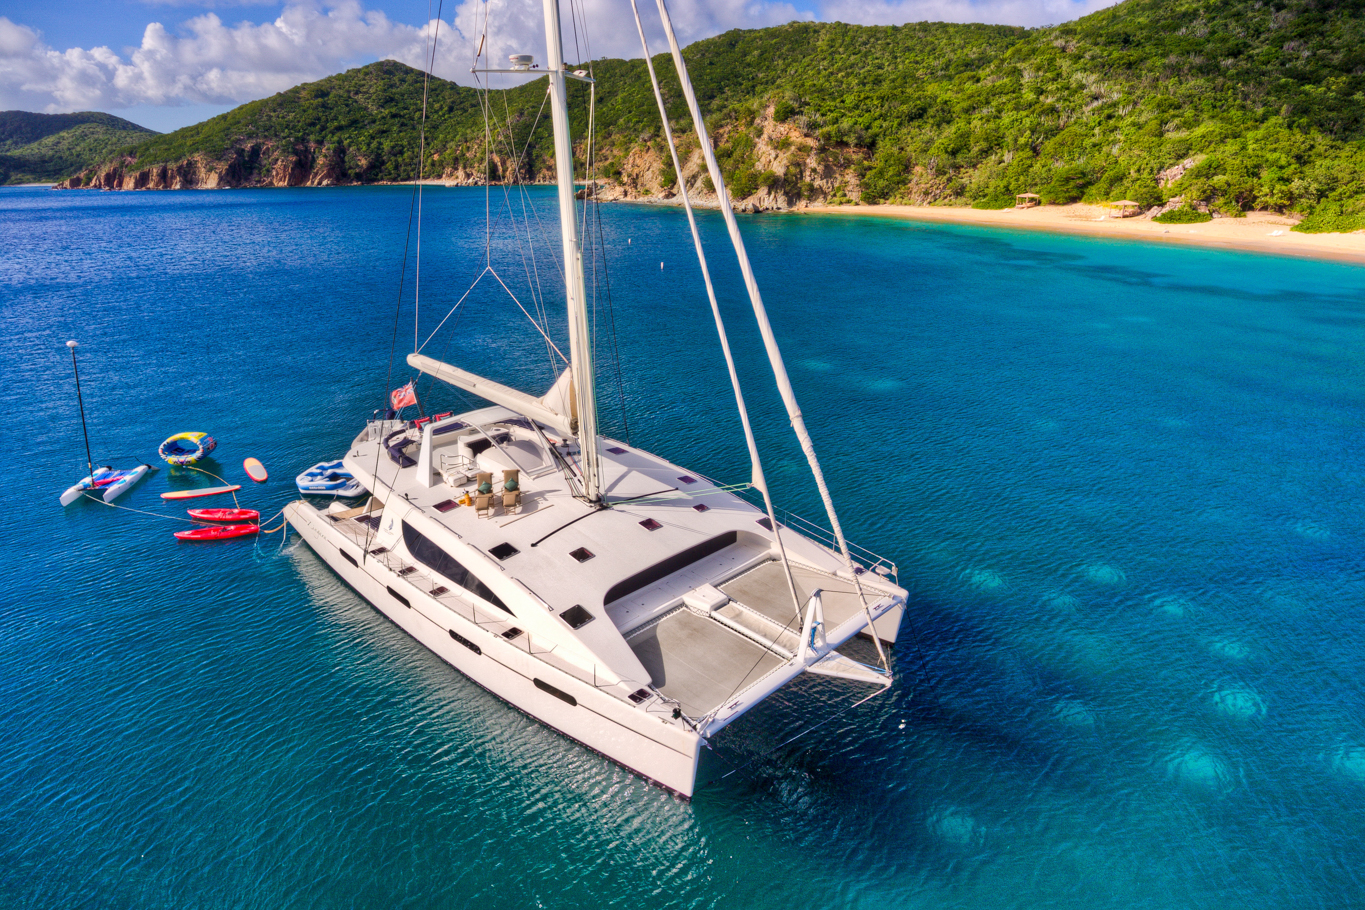 10-person BVI Catamaran Charters